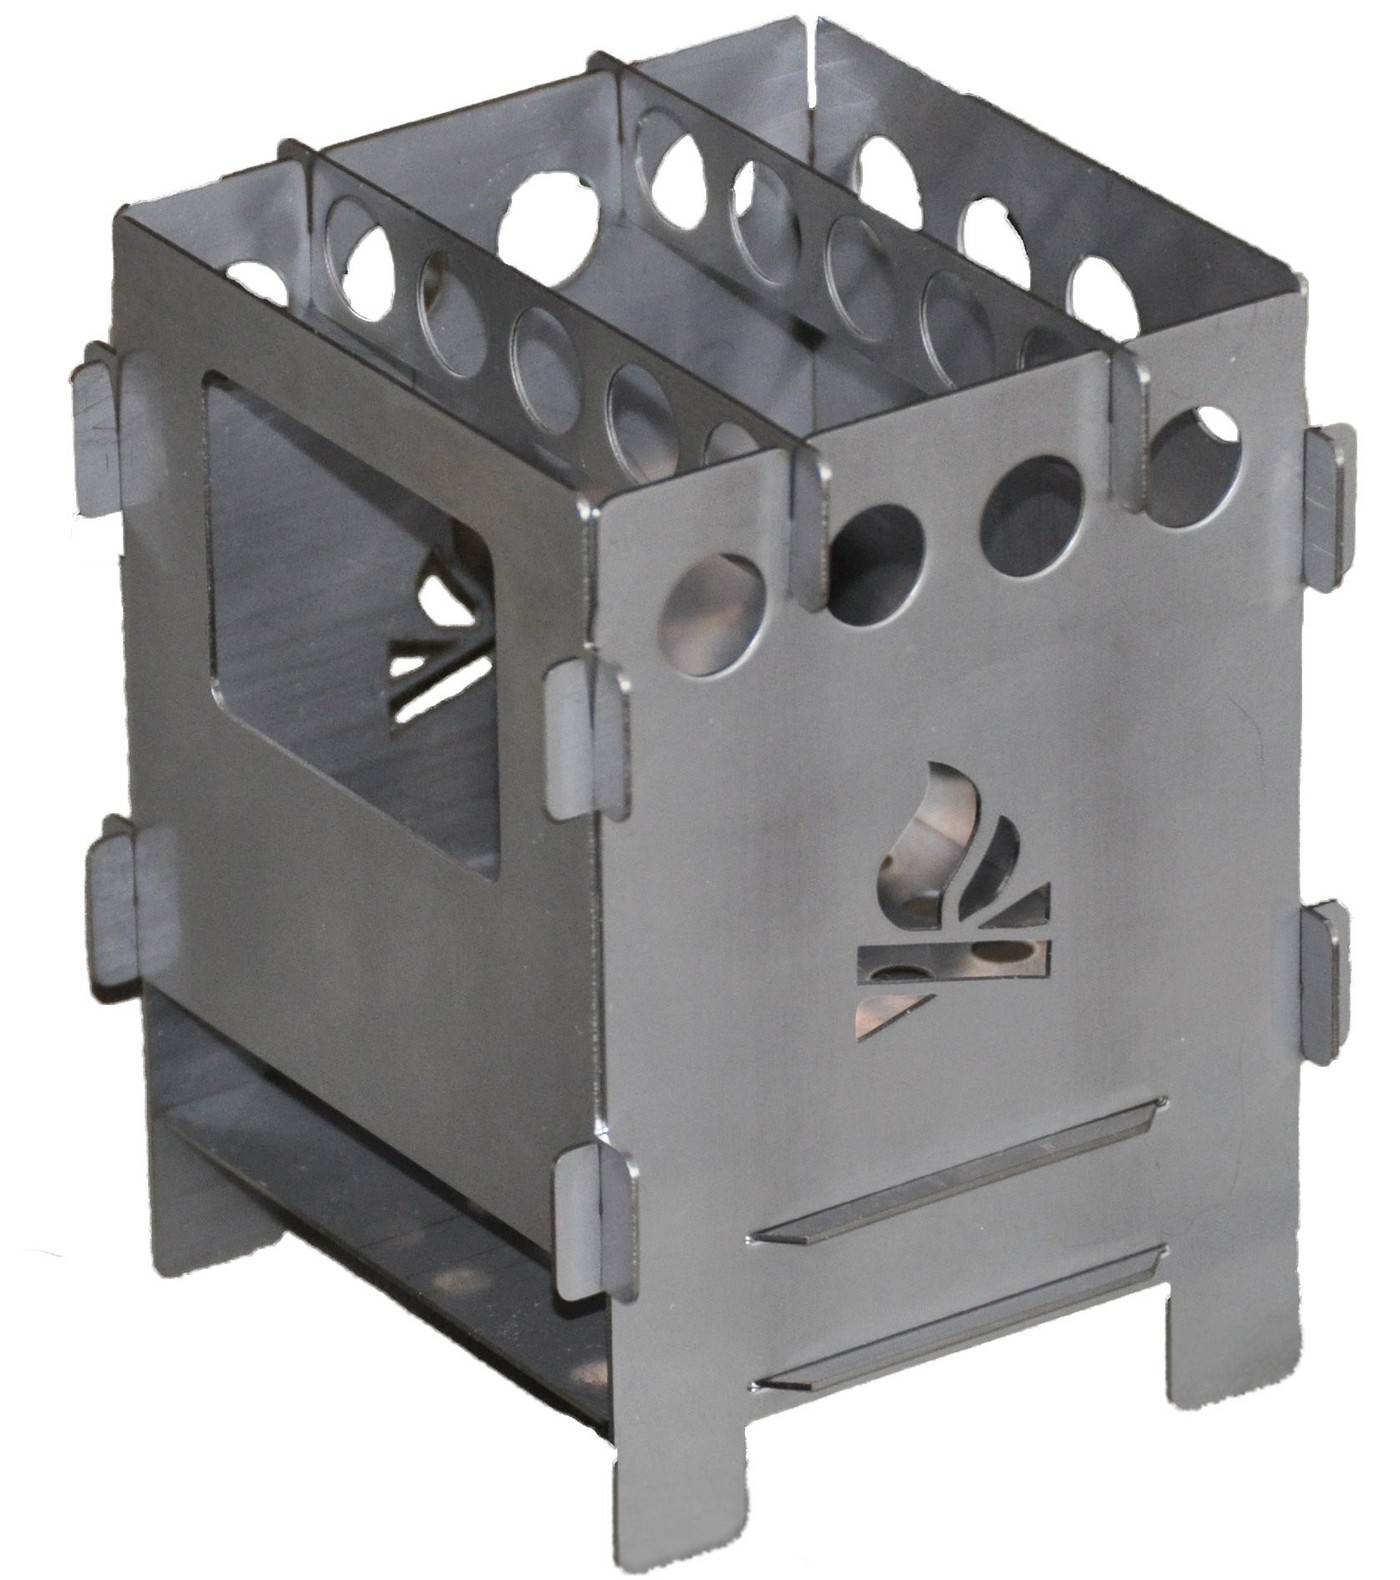 Bushbox Outdoor Stove